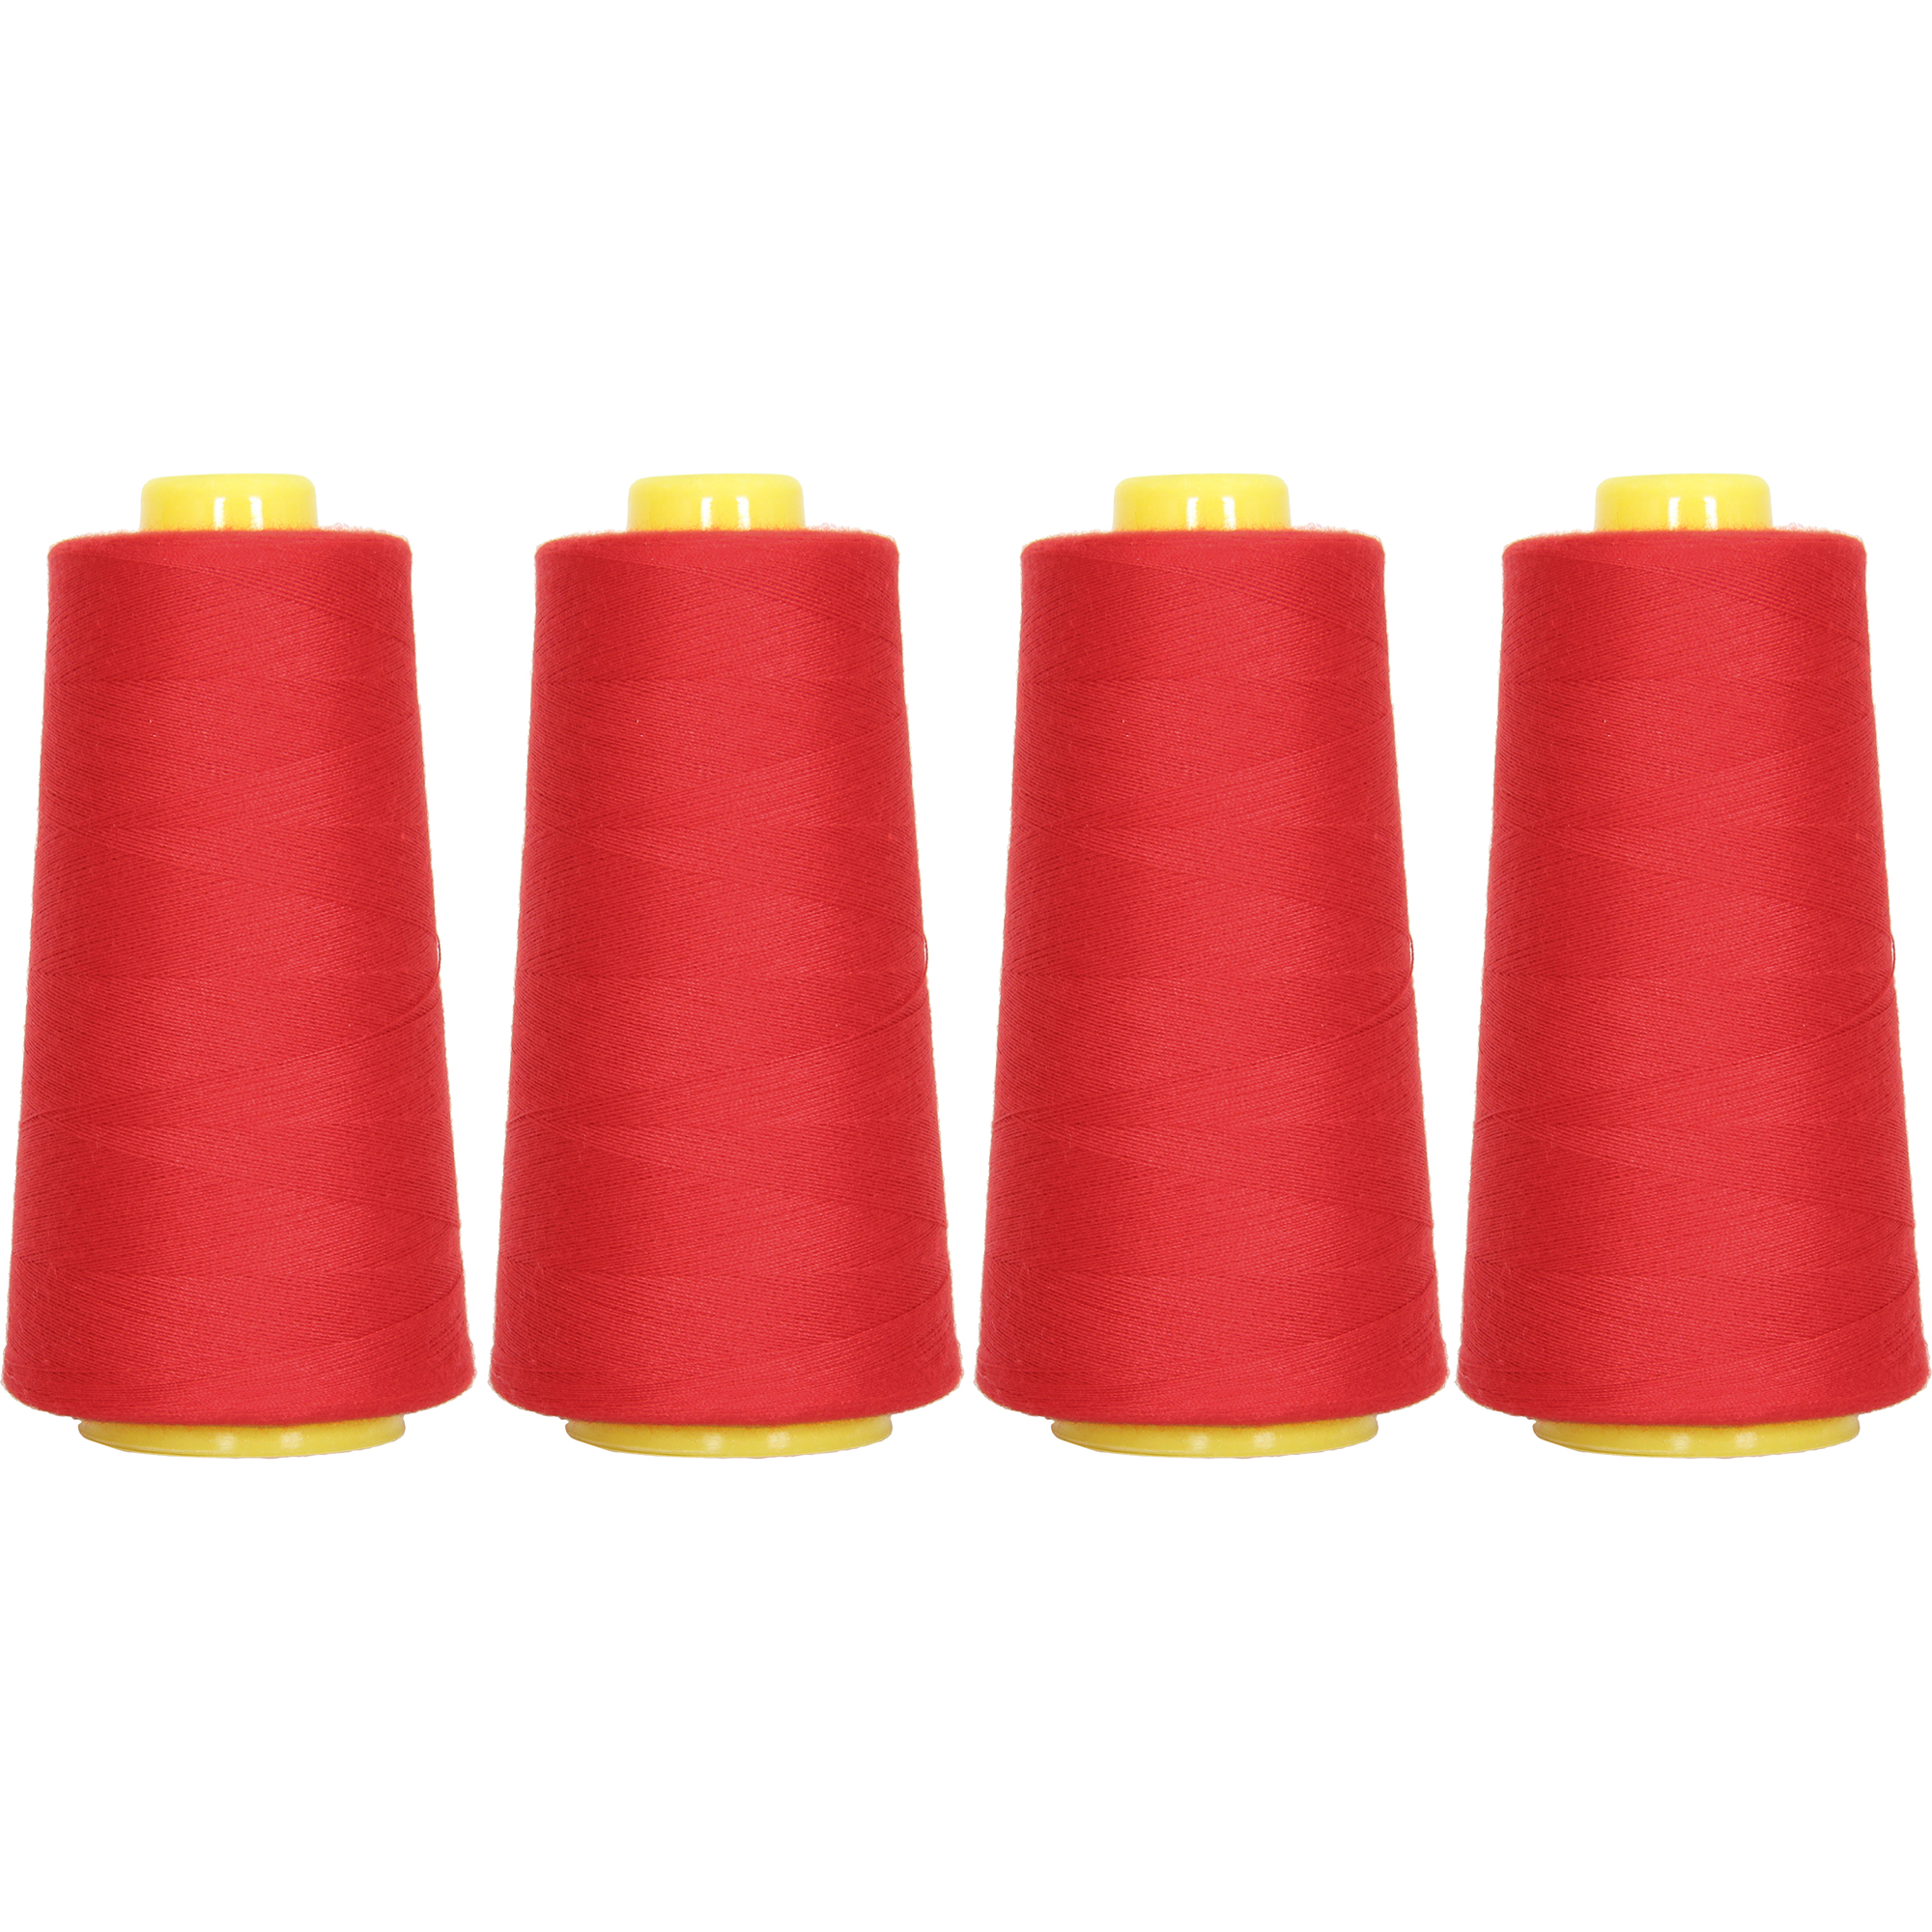 Threadart Polyester Serger Thread - 2750 yds 40/2 - Christmas Red - 56 Colors - 4 Cone Bundle Pack